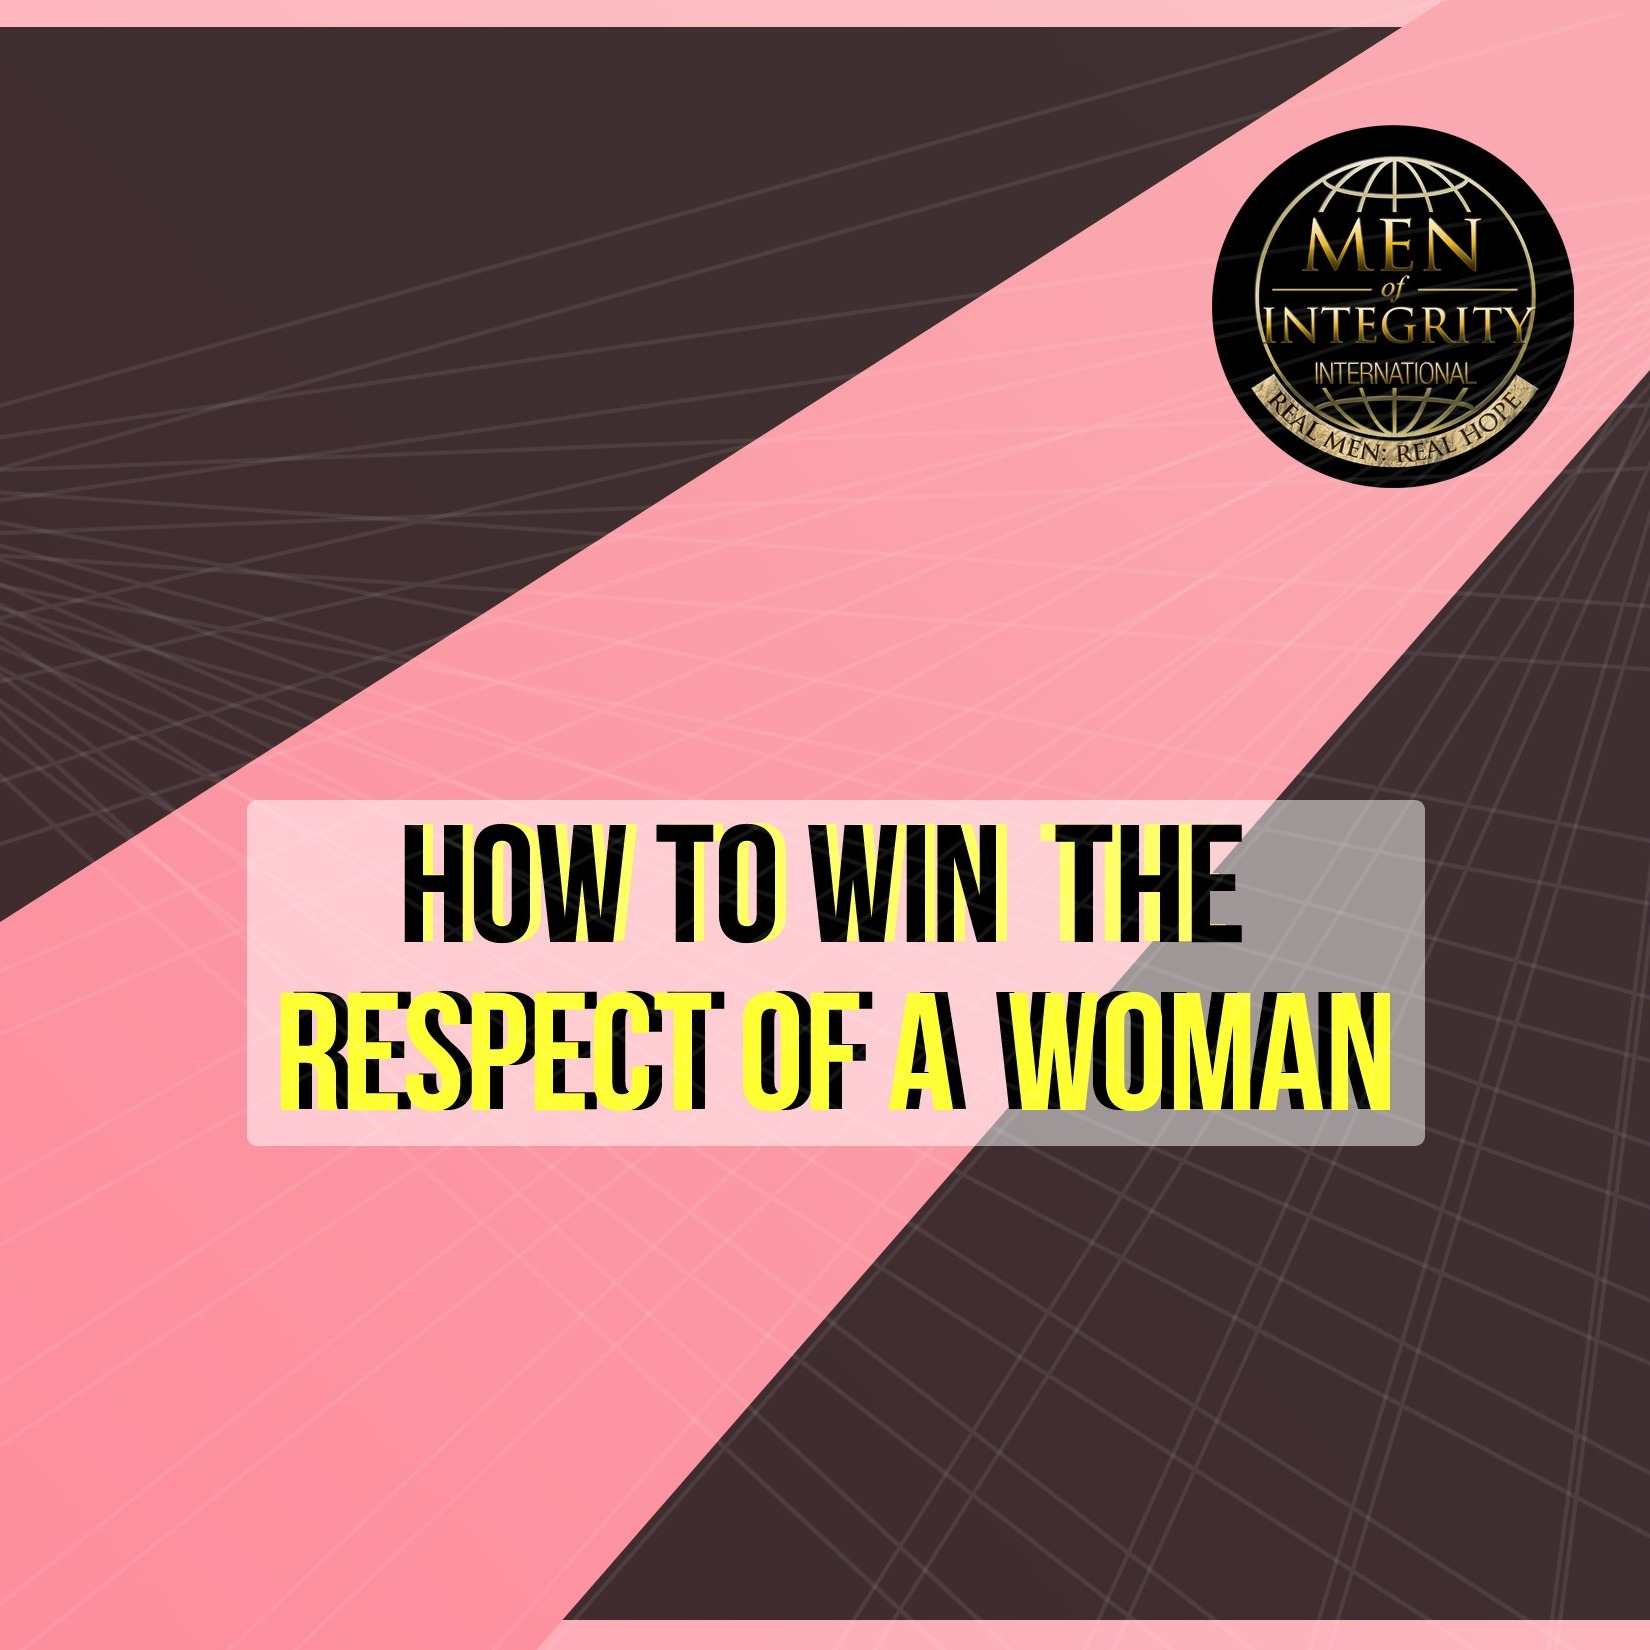 How to Win the Respect of a Woman